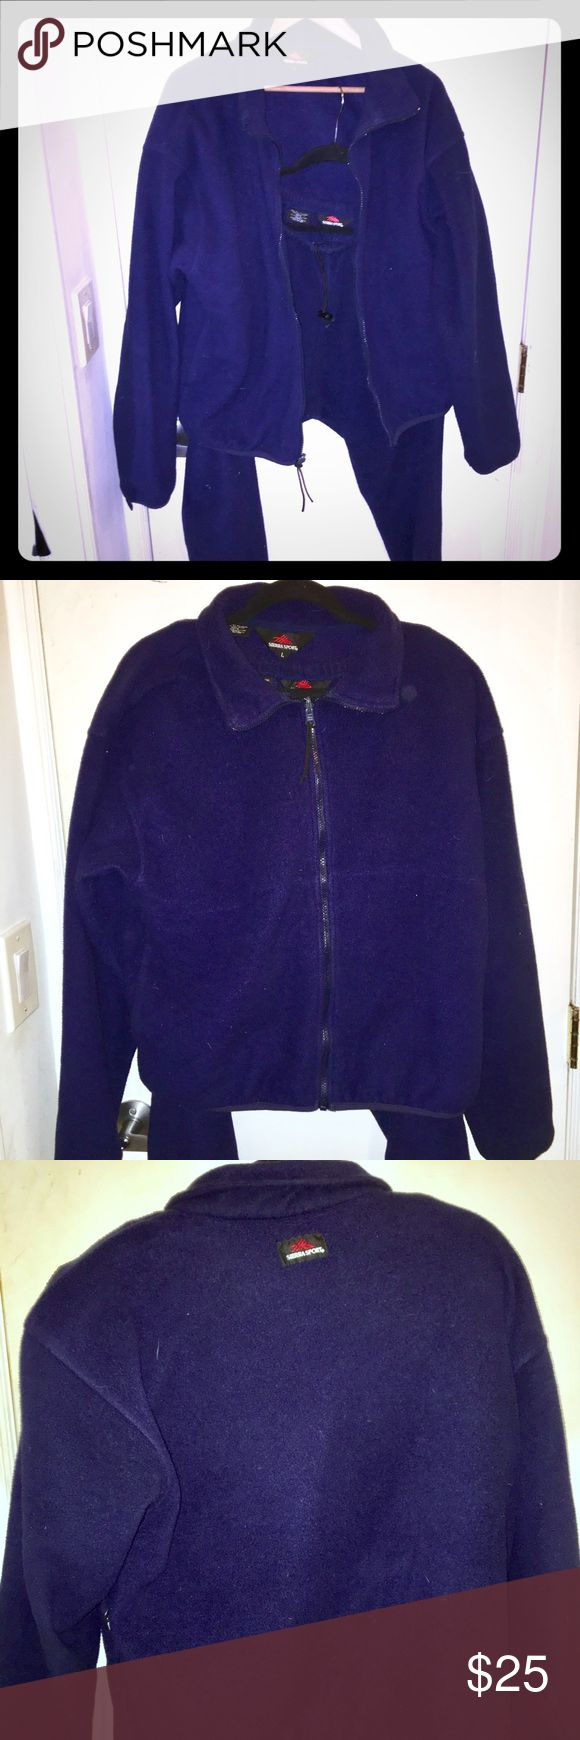 Sierra Sport Blue Polyester Fleece suit Sierra Sport 2 piece Blue Polyester Fleece suit, in size Large. Barely worn this like new set will keep you ensconced in Fleece! Perfect for those winter nights, or those morning jogs. Stay warm and look fly doing it. Sierra Sport Other